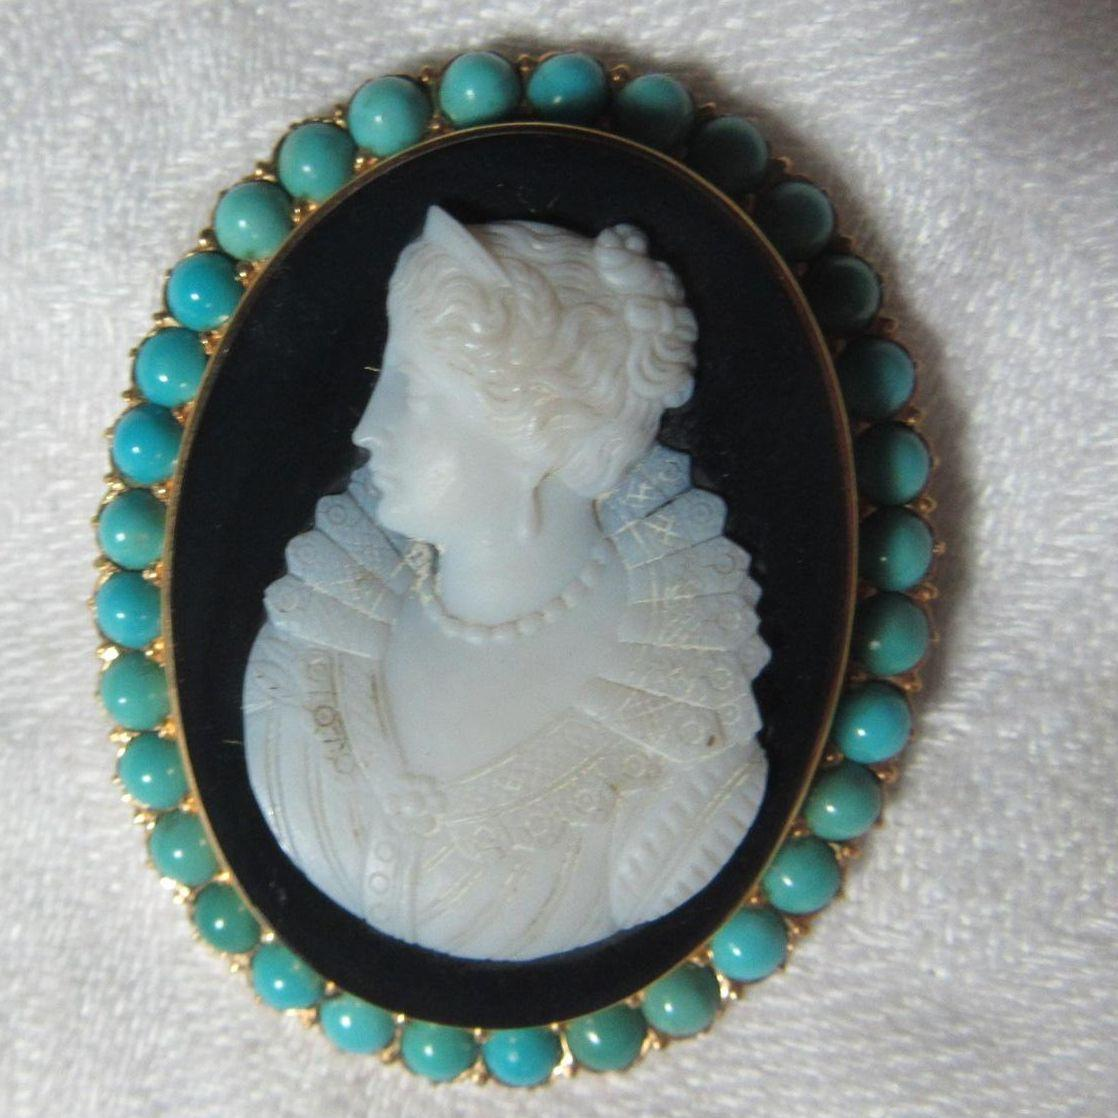 18K Gold Antique Hardstone Cameo With Persian Turquoise